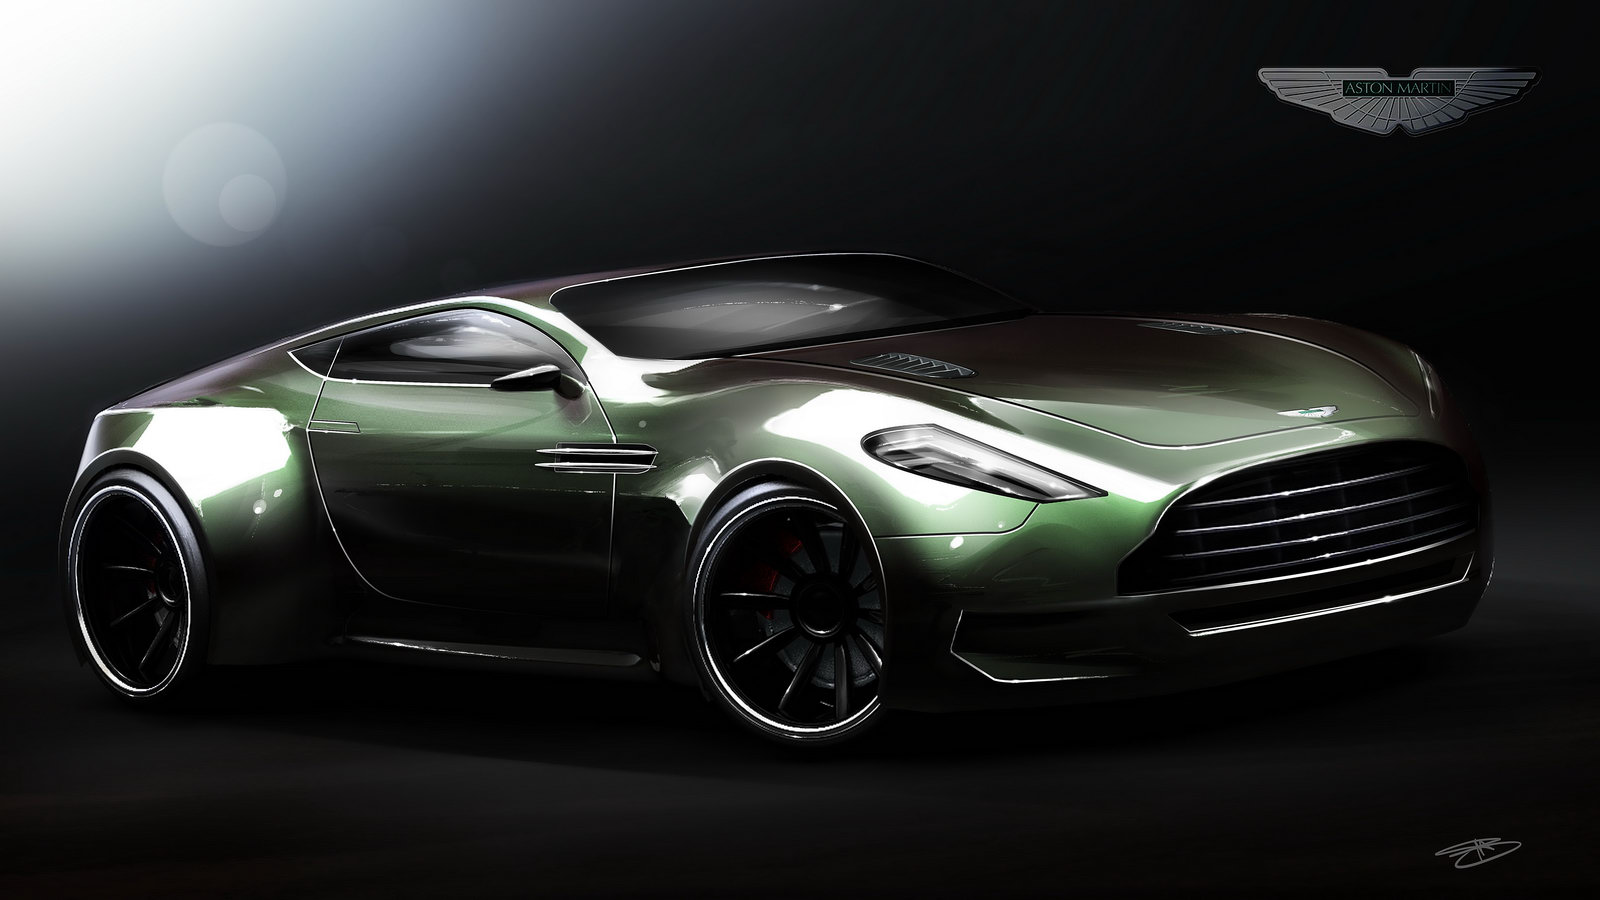 Marouane Bembli's Aston Martin Veloce Concept Design Pictures, Photos, Wallpapers. | Top Speed